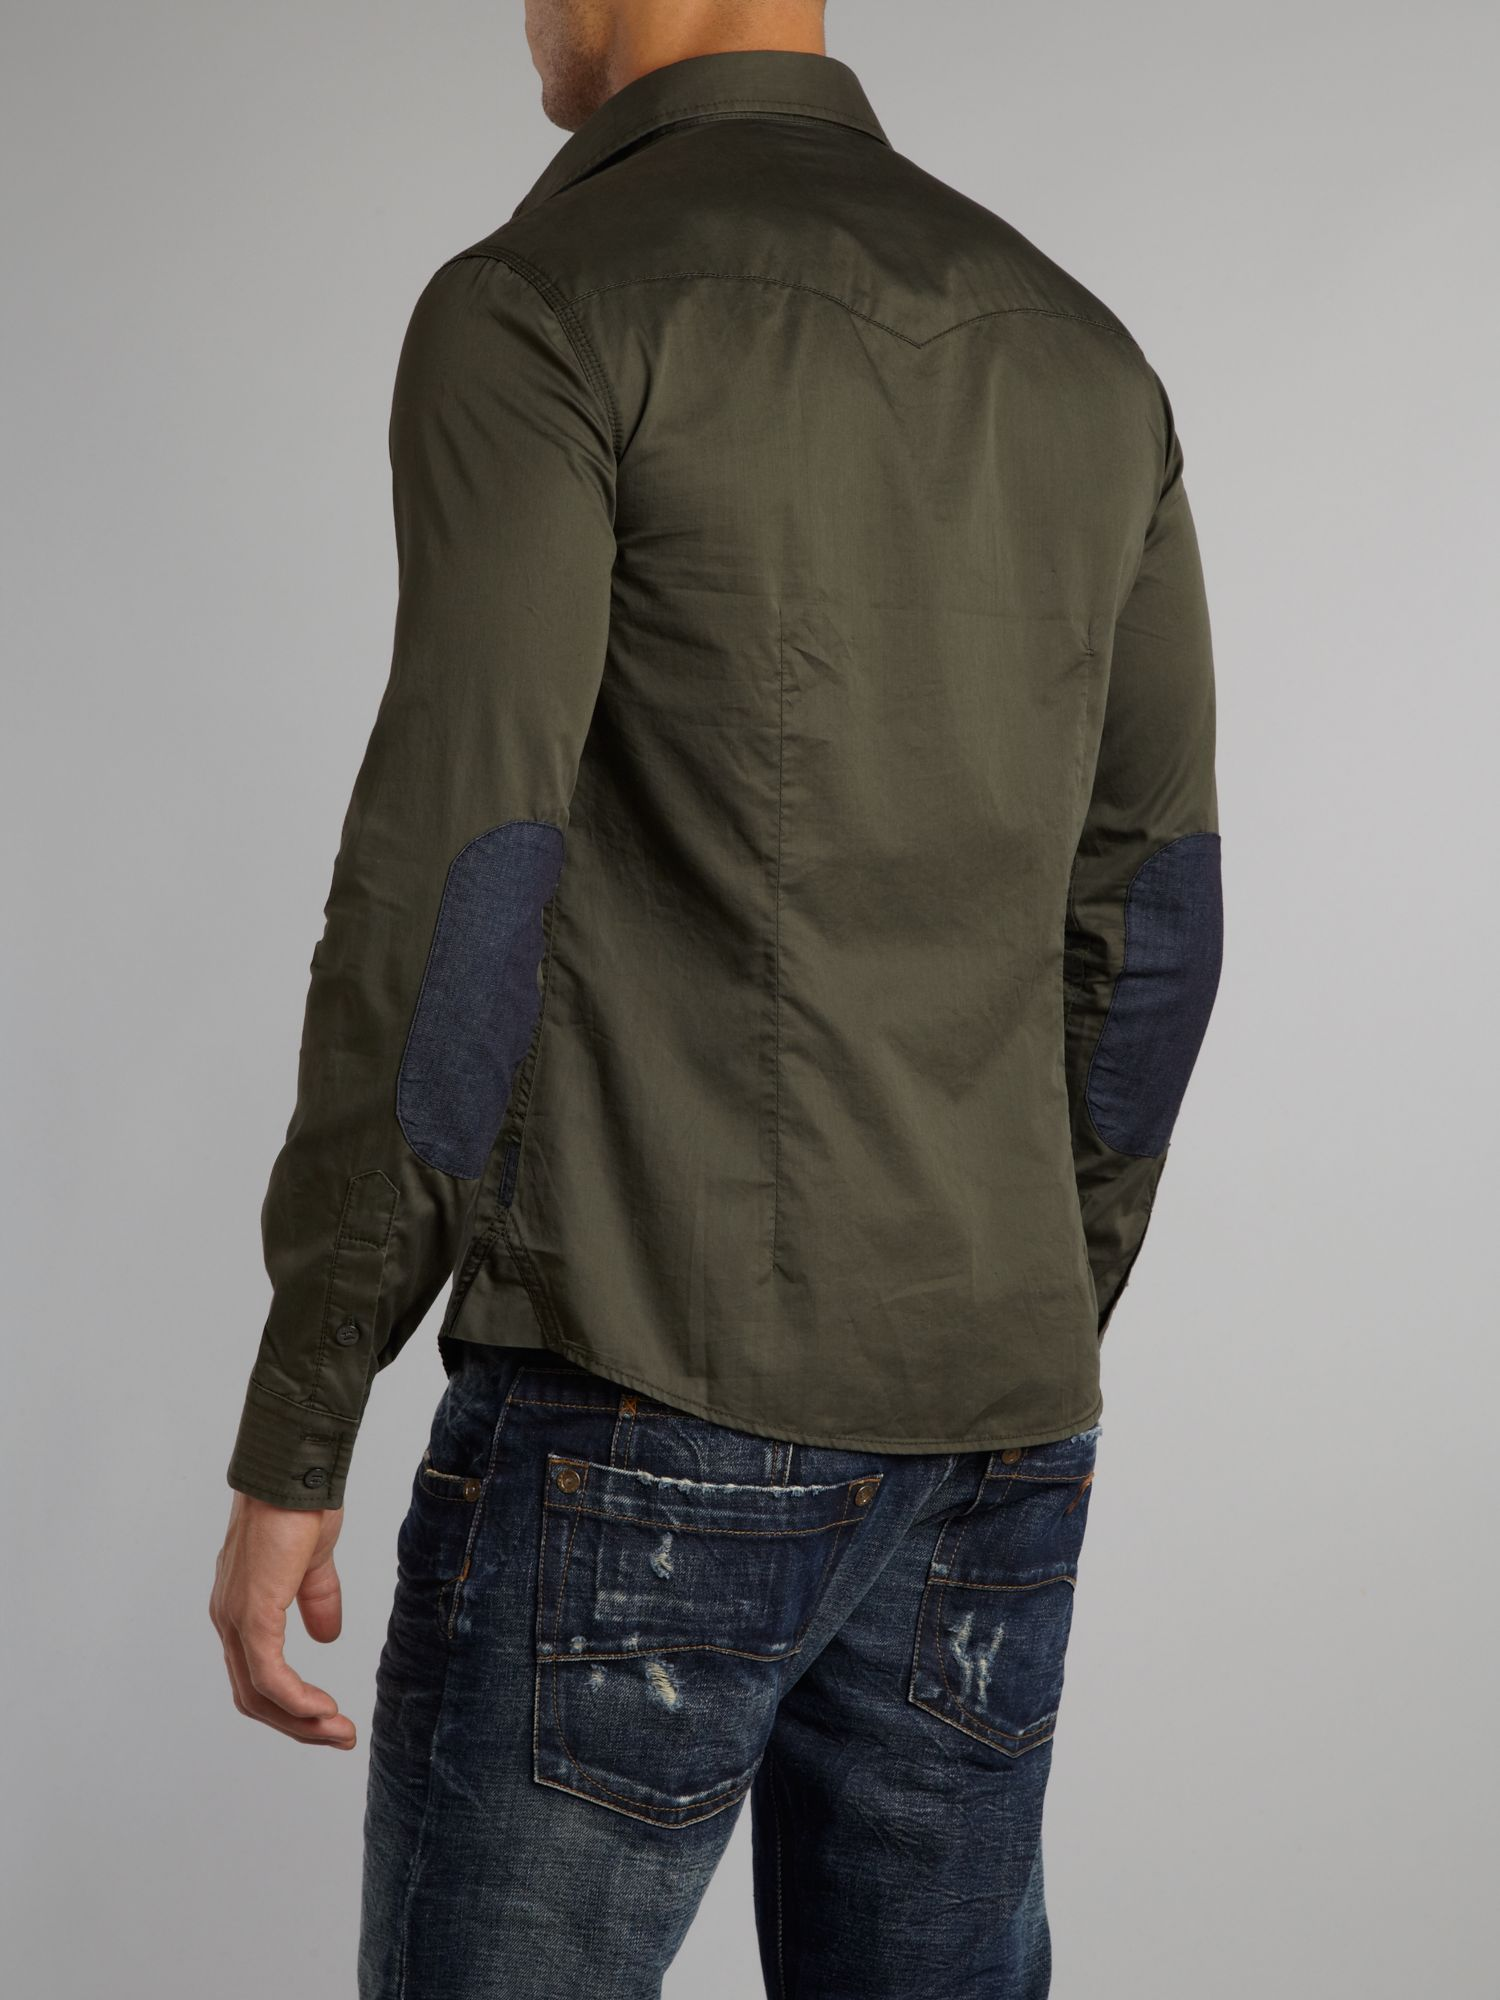 Armani jeans Patch Pocket Shirt in Green for Men  Lyst